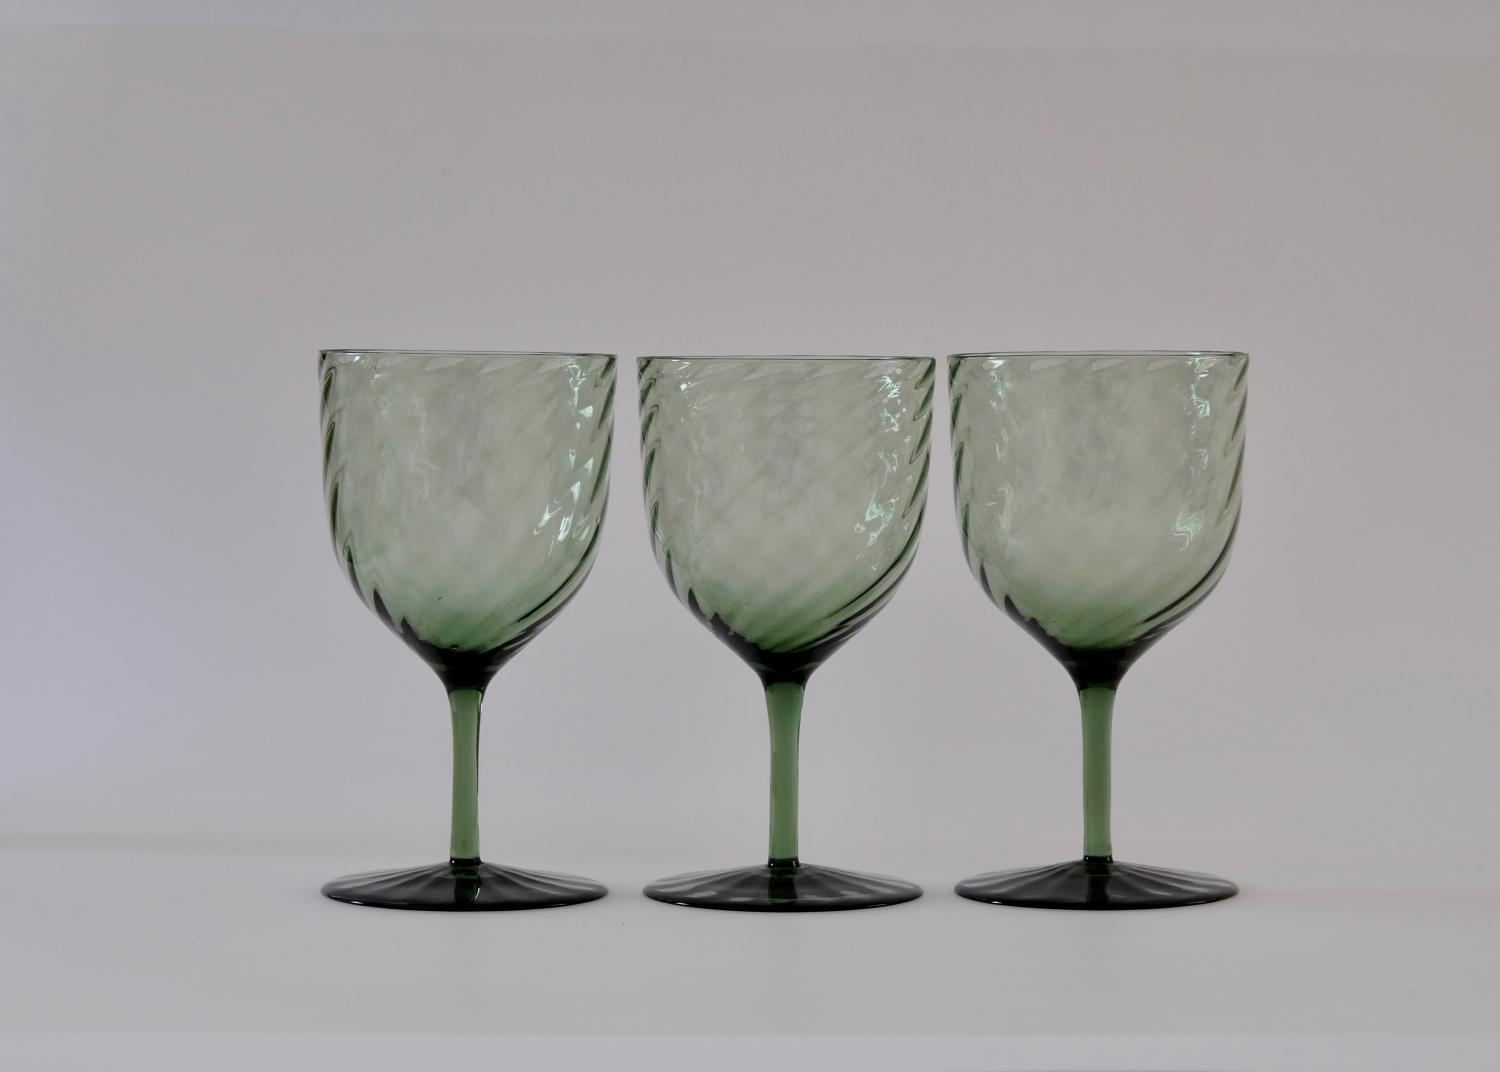 Set of six green wine glasses C1870